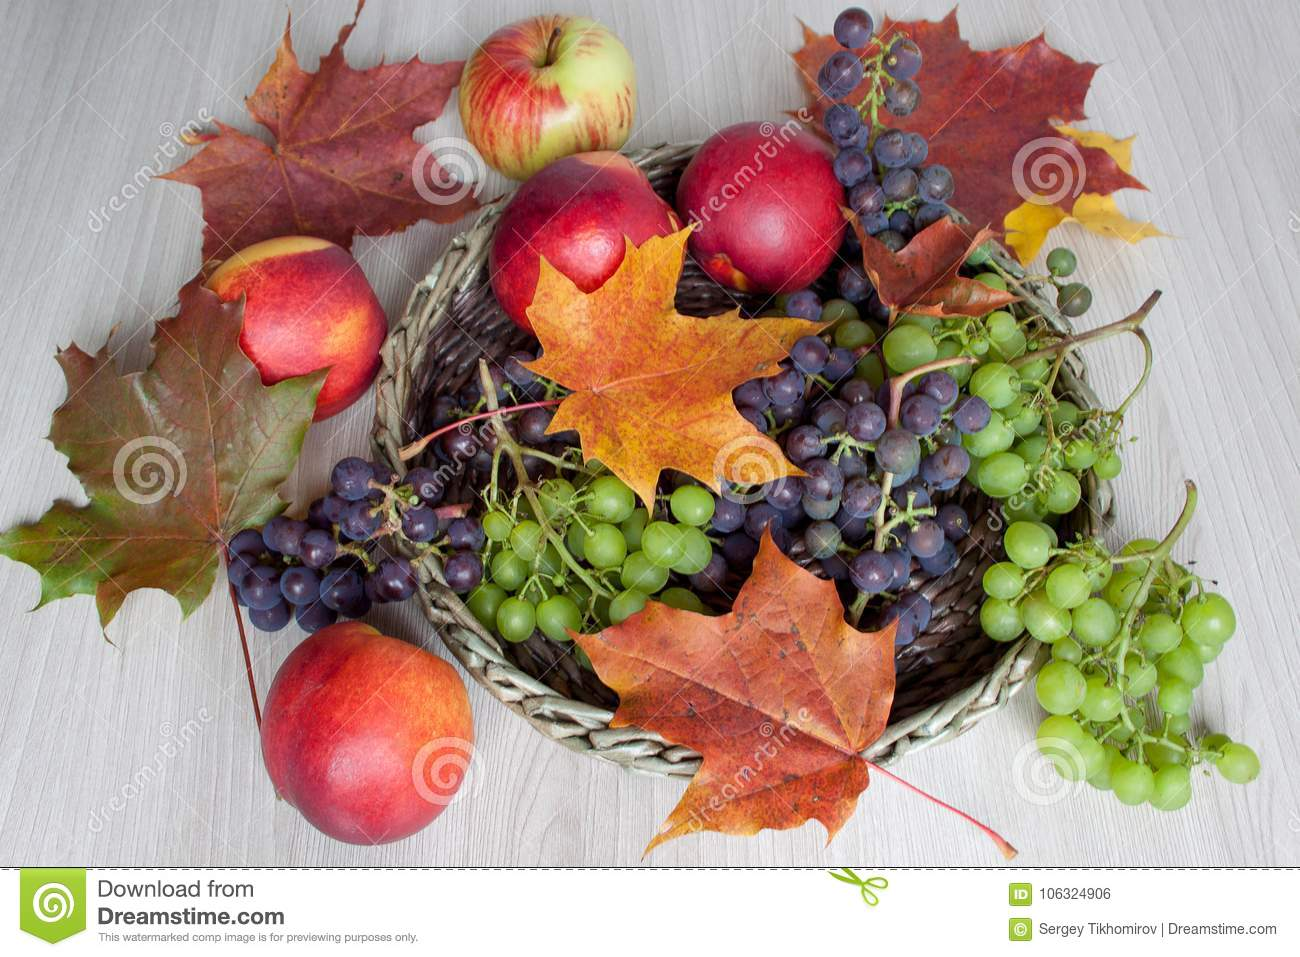 Maple Leafs Nectarine Grapes And Other Gifts Of Nature Stock Photo Image Of Fruit Nature 106324906